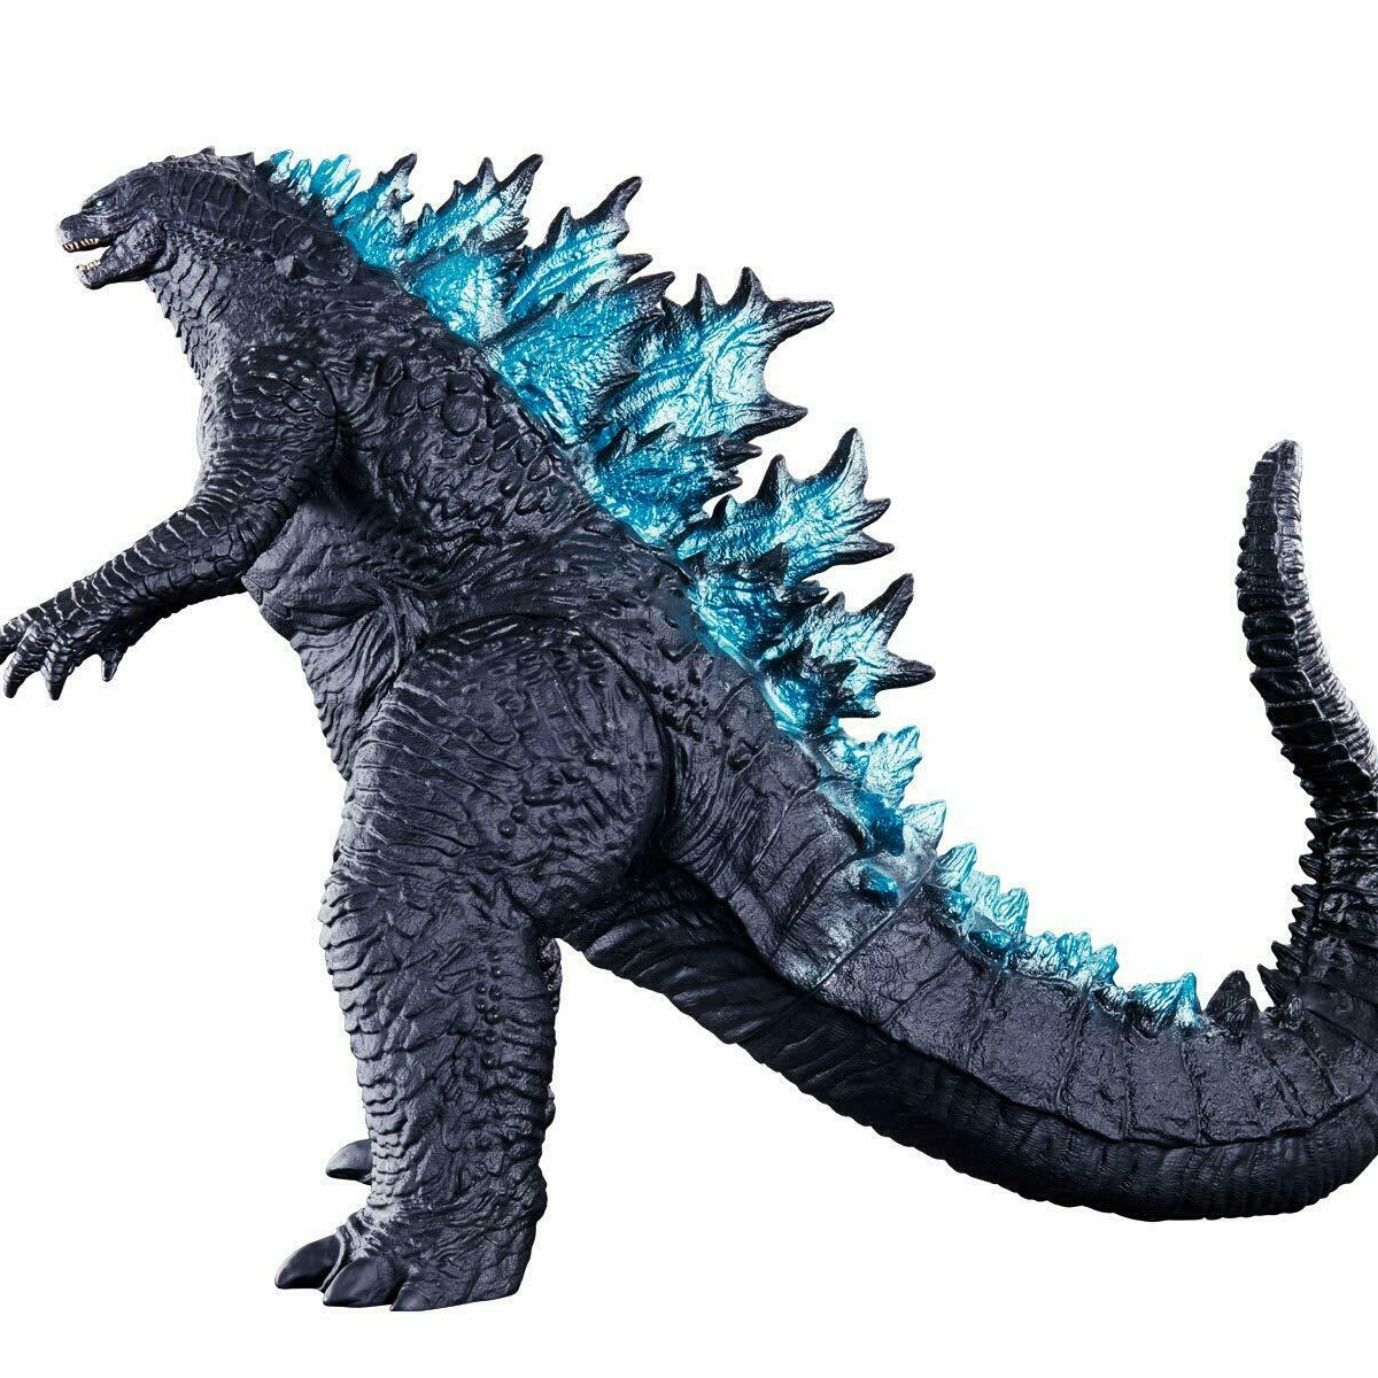 GODZILLA 2019 King of the Monsters Kaiju King Series